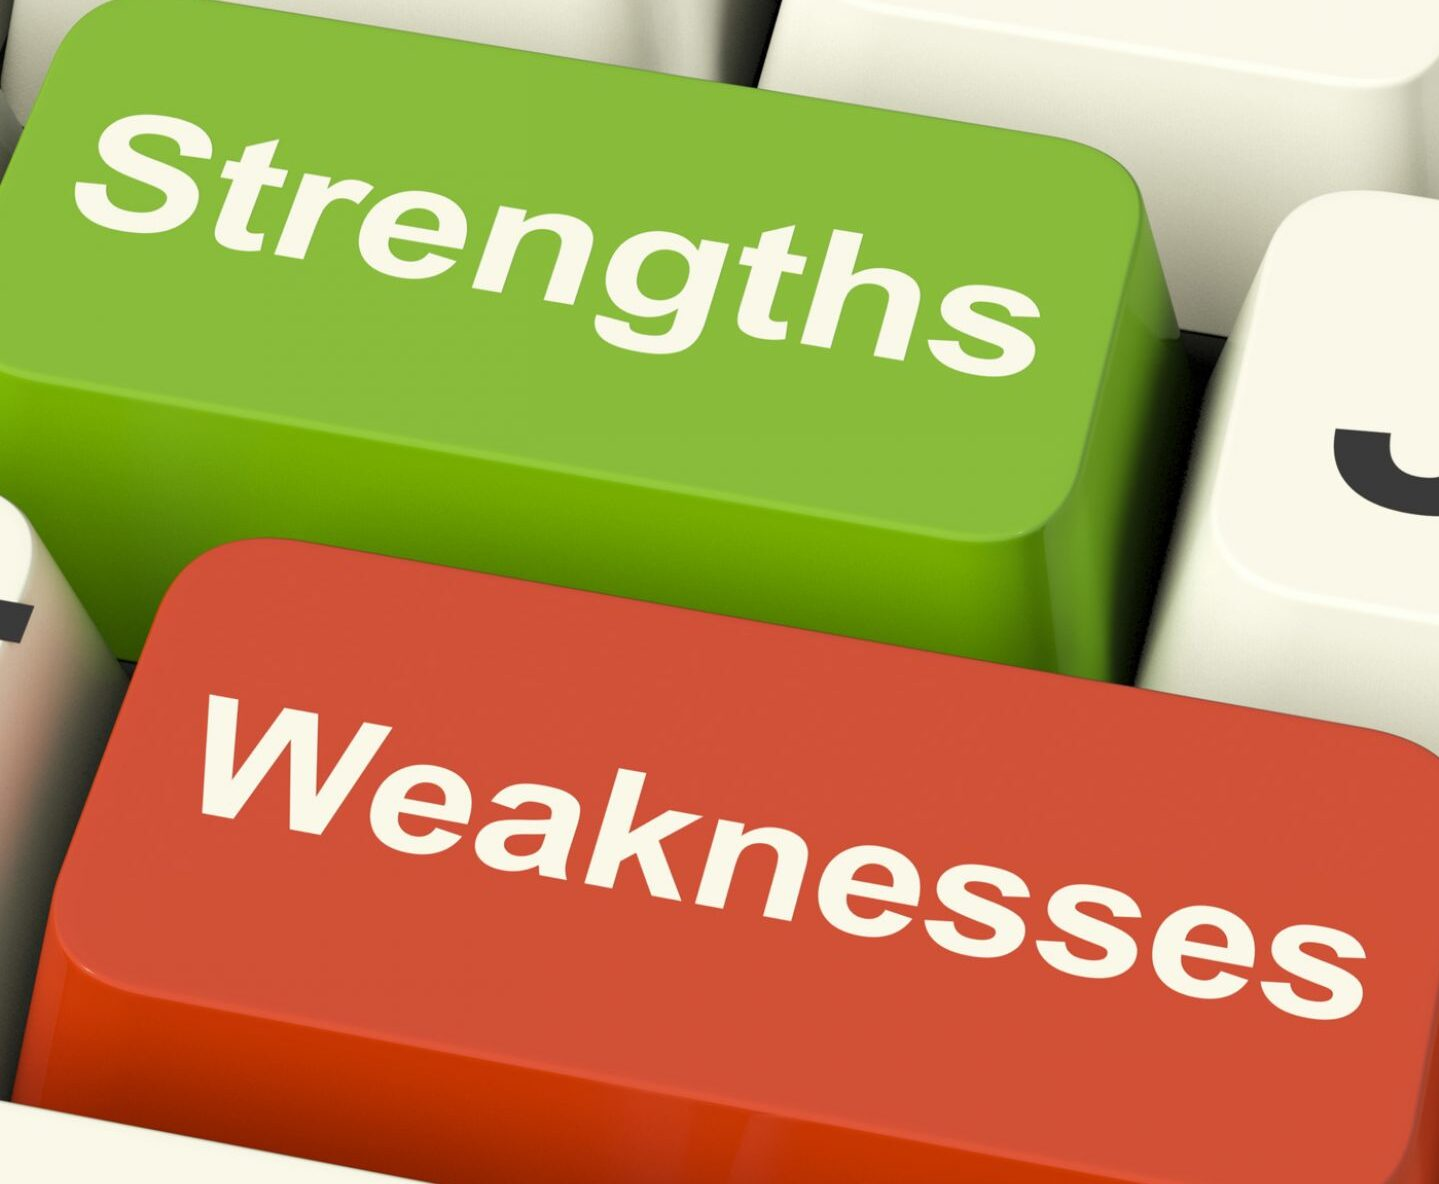 weaknesses-into-strengths